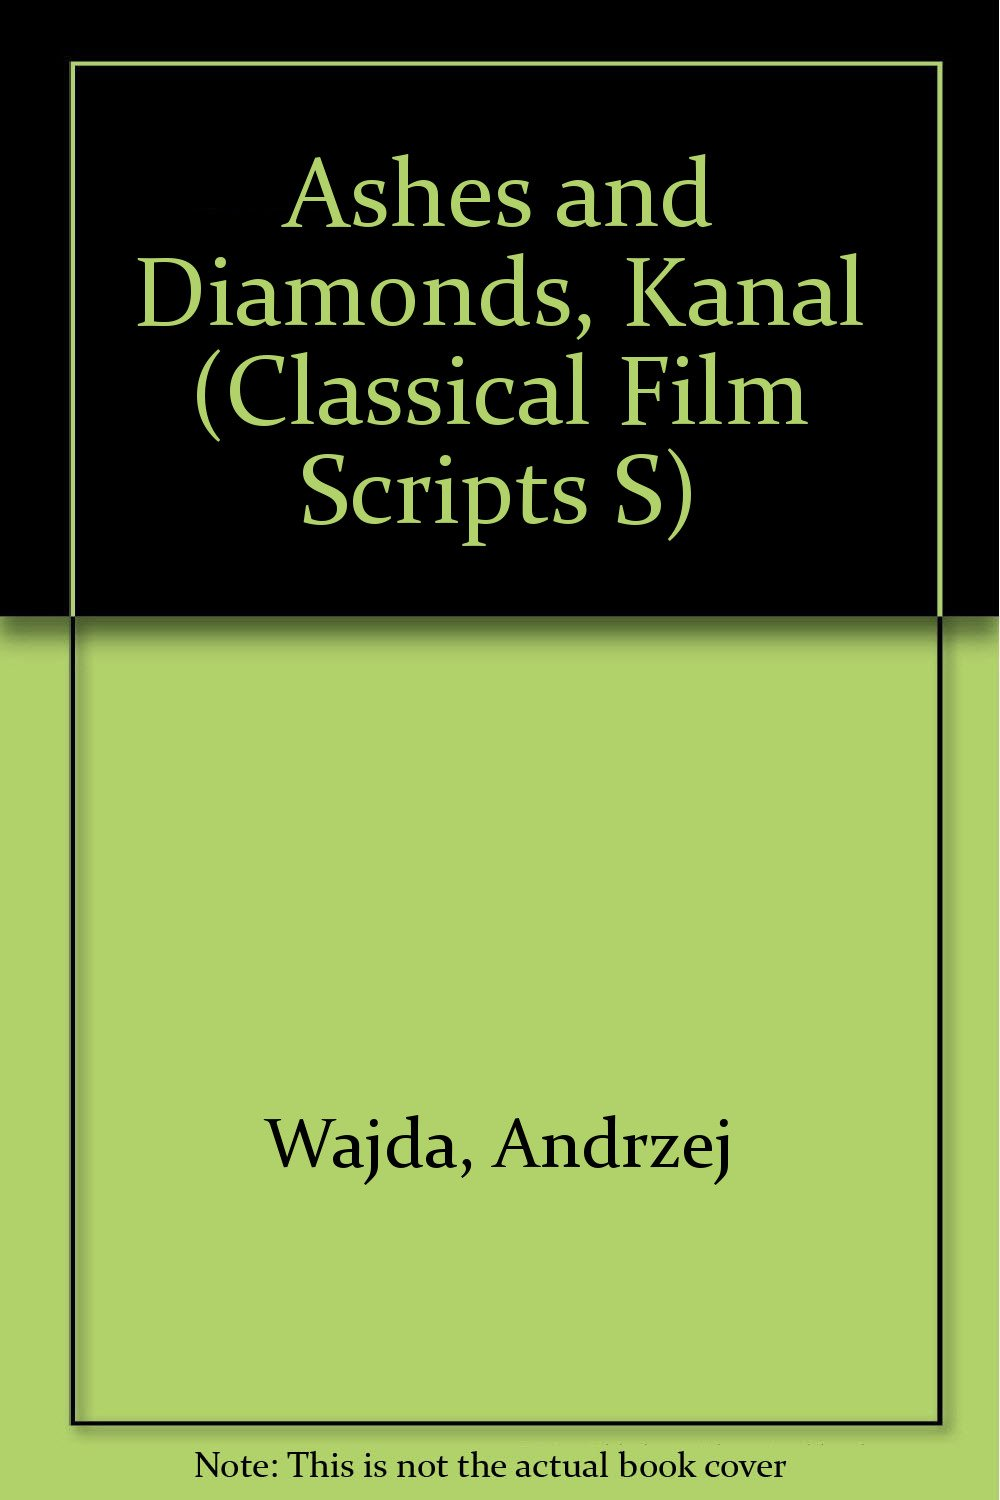 Ashes and Diamonds, Kanal (Classical Film Scripts S)